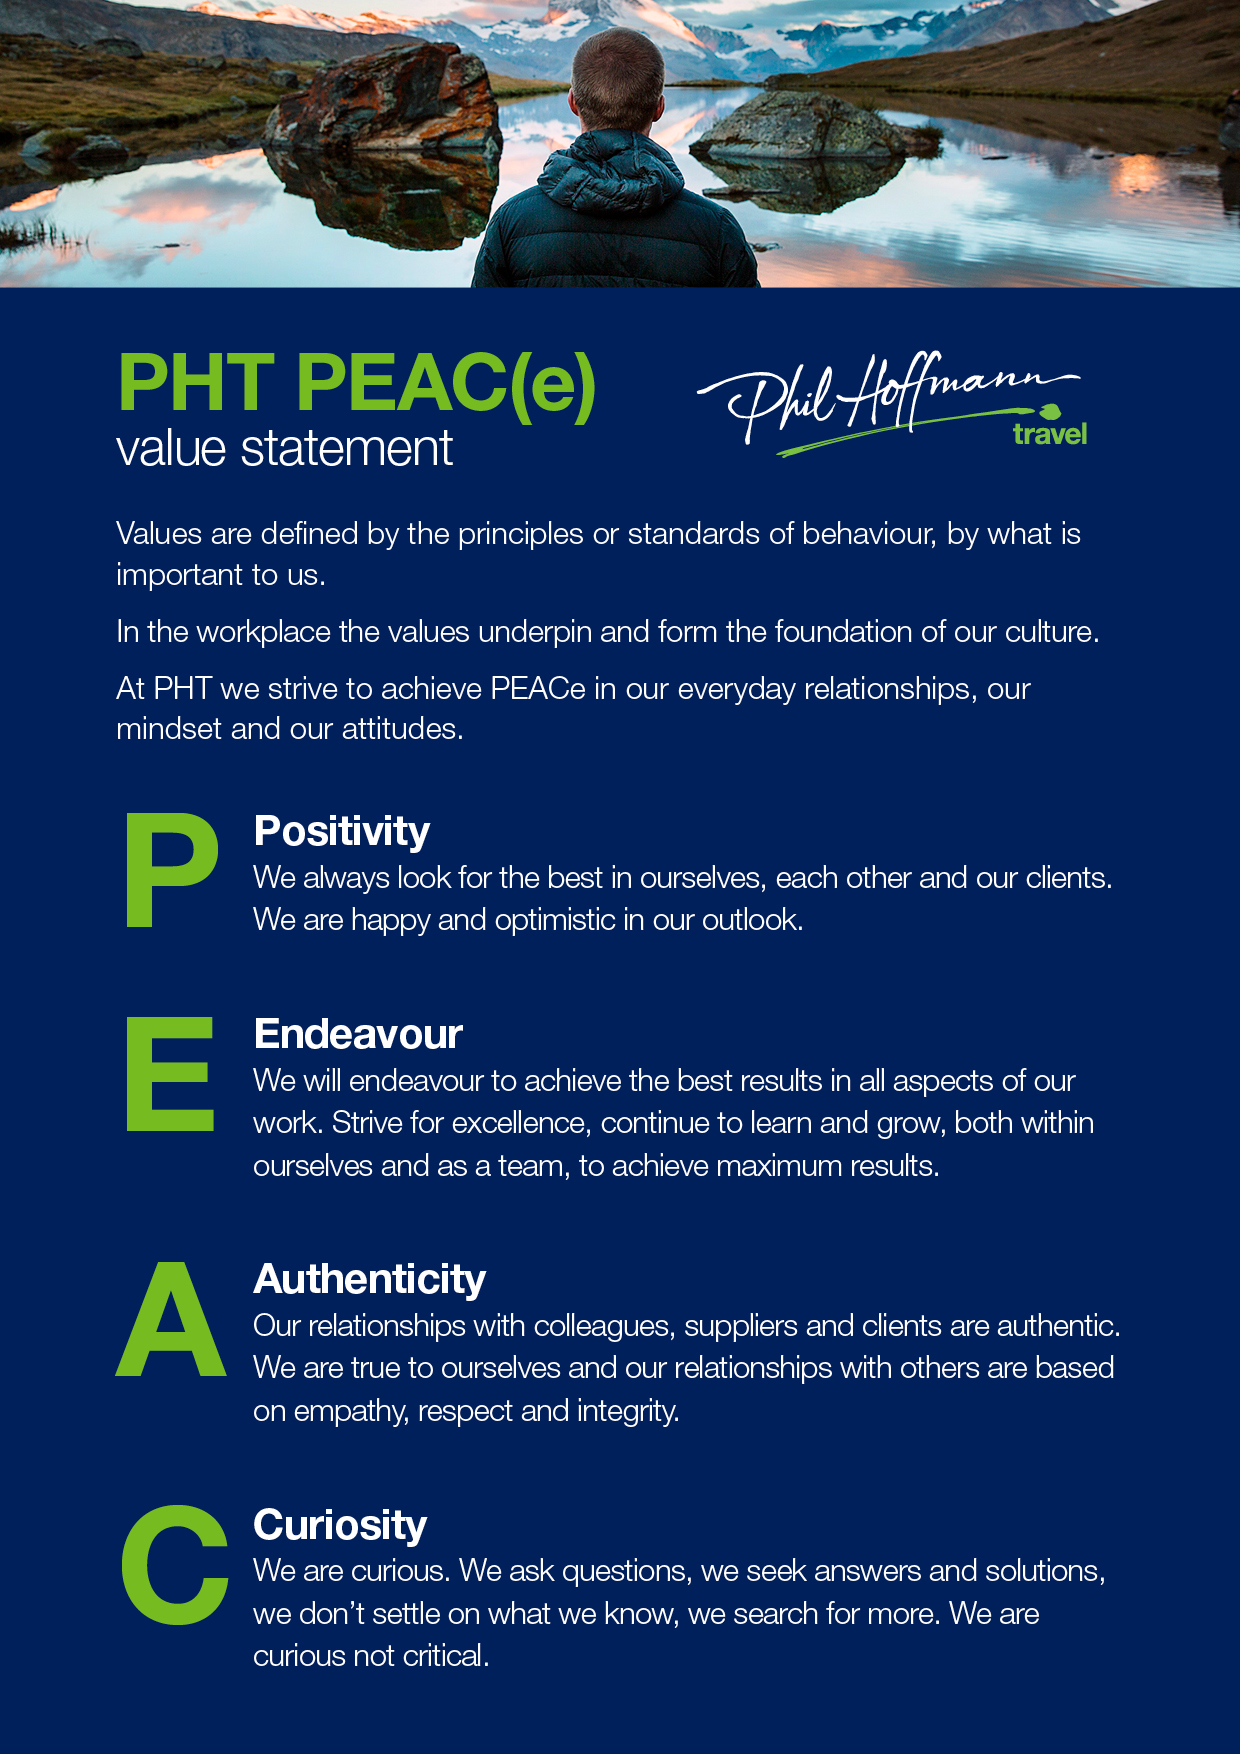 PHT-Peac-company-values